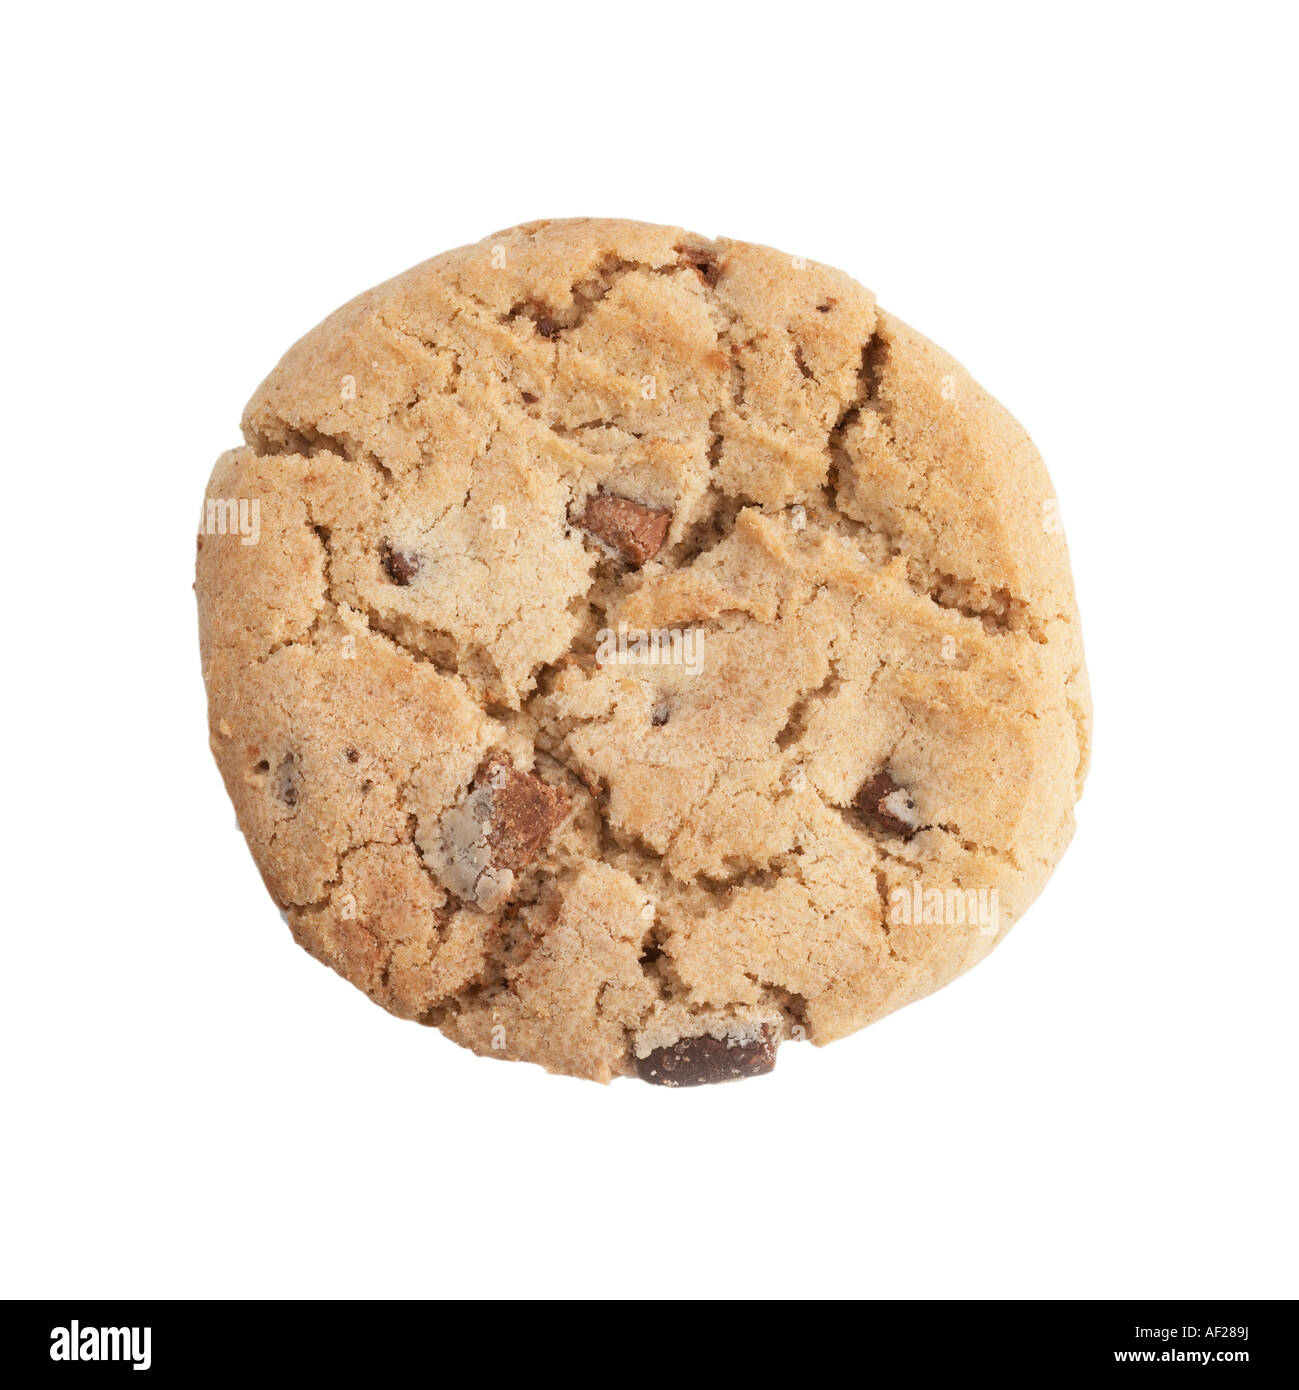 Chocolate chip cookie - Stock Image